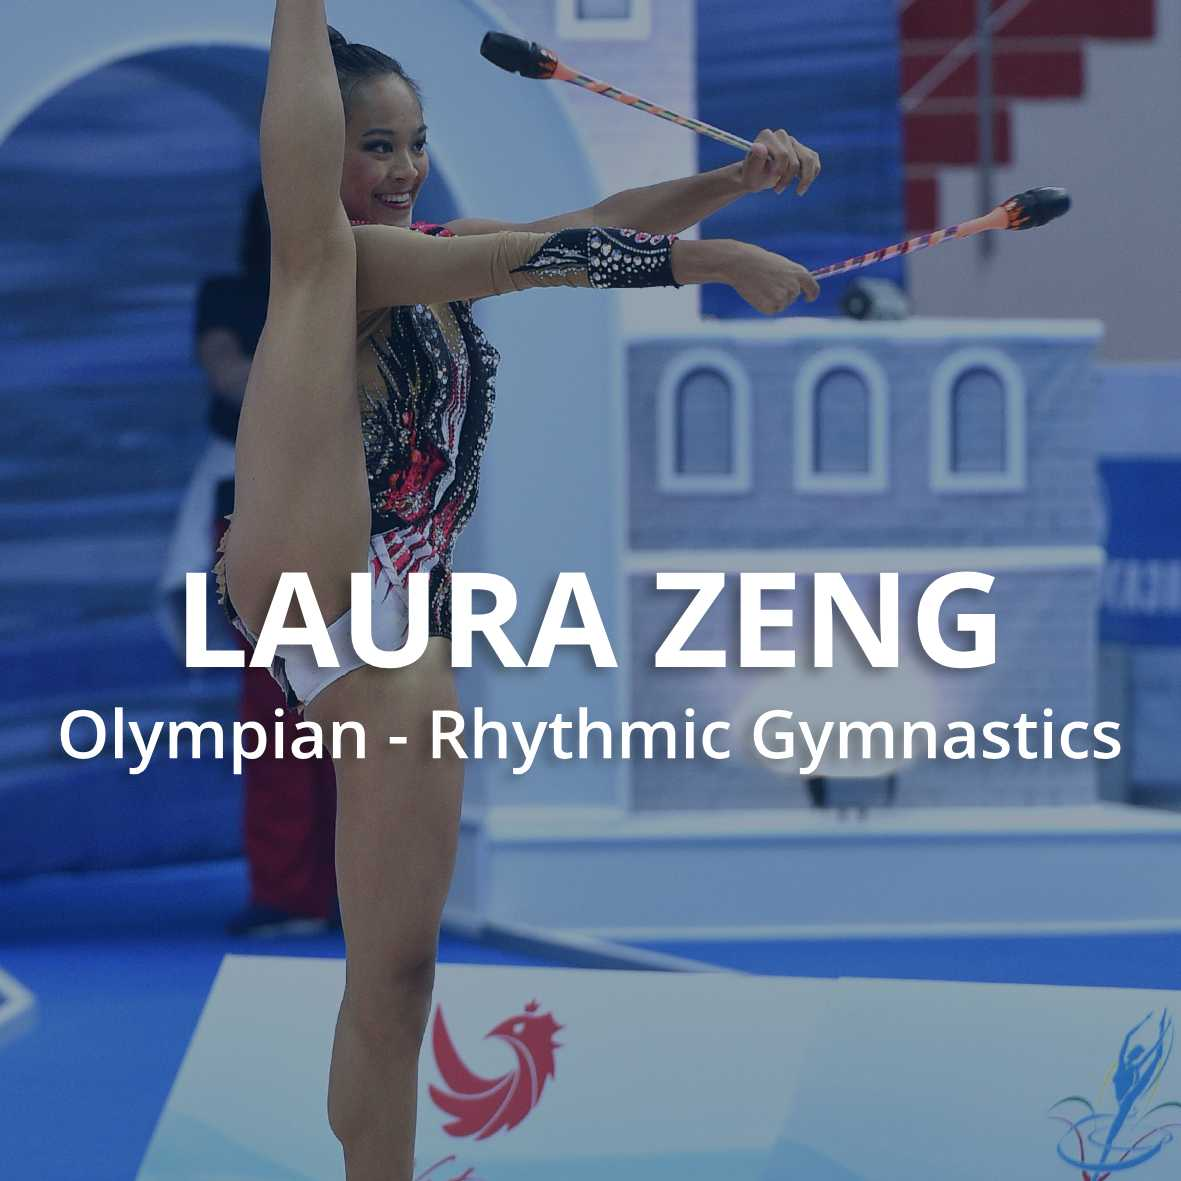 laura zeng, olympic rhythmic gymnastics, foam roller athletes